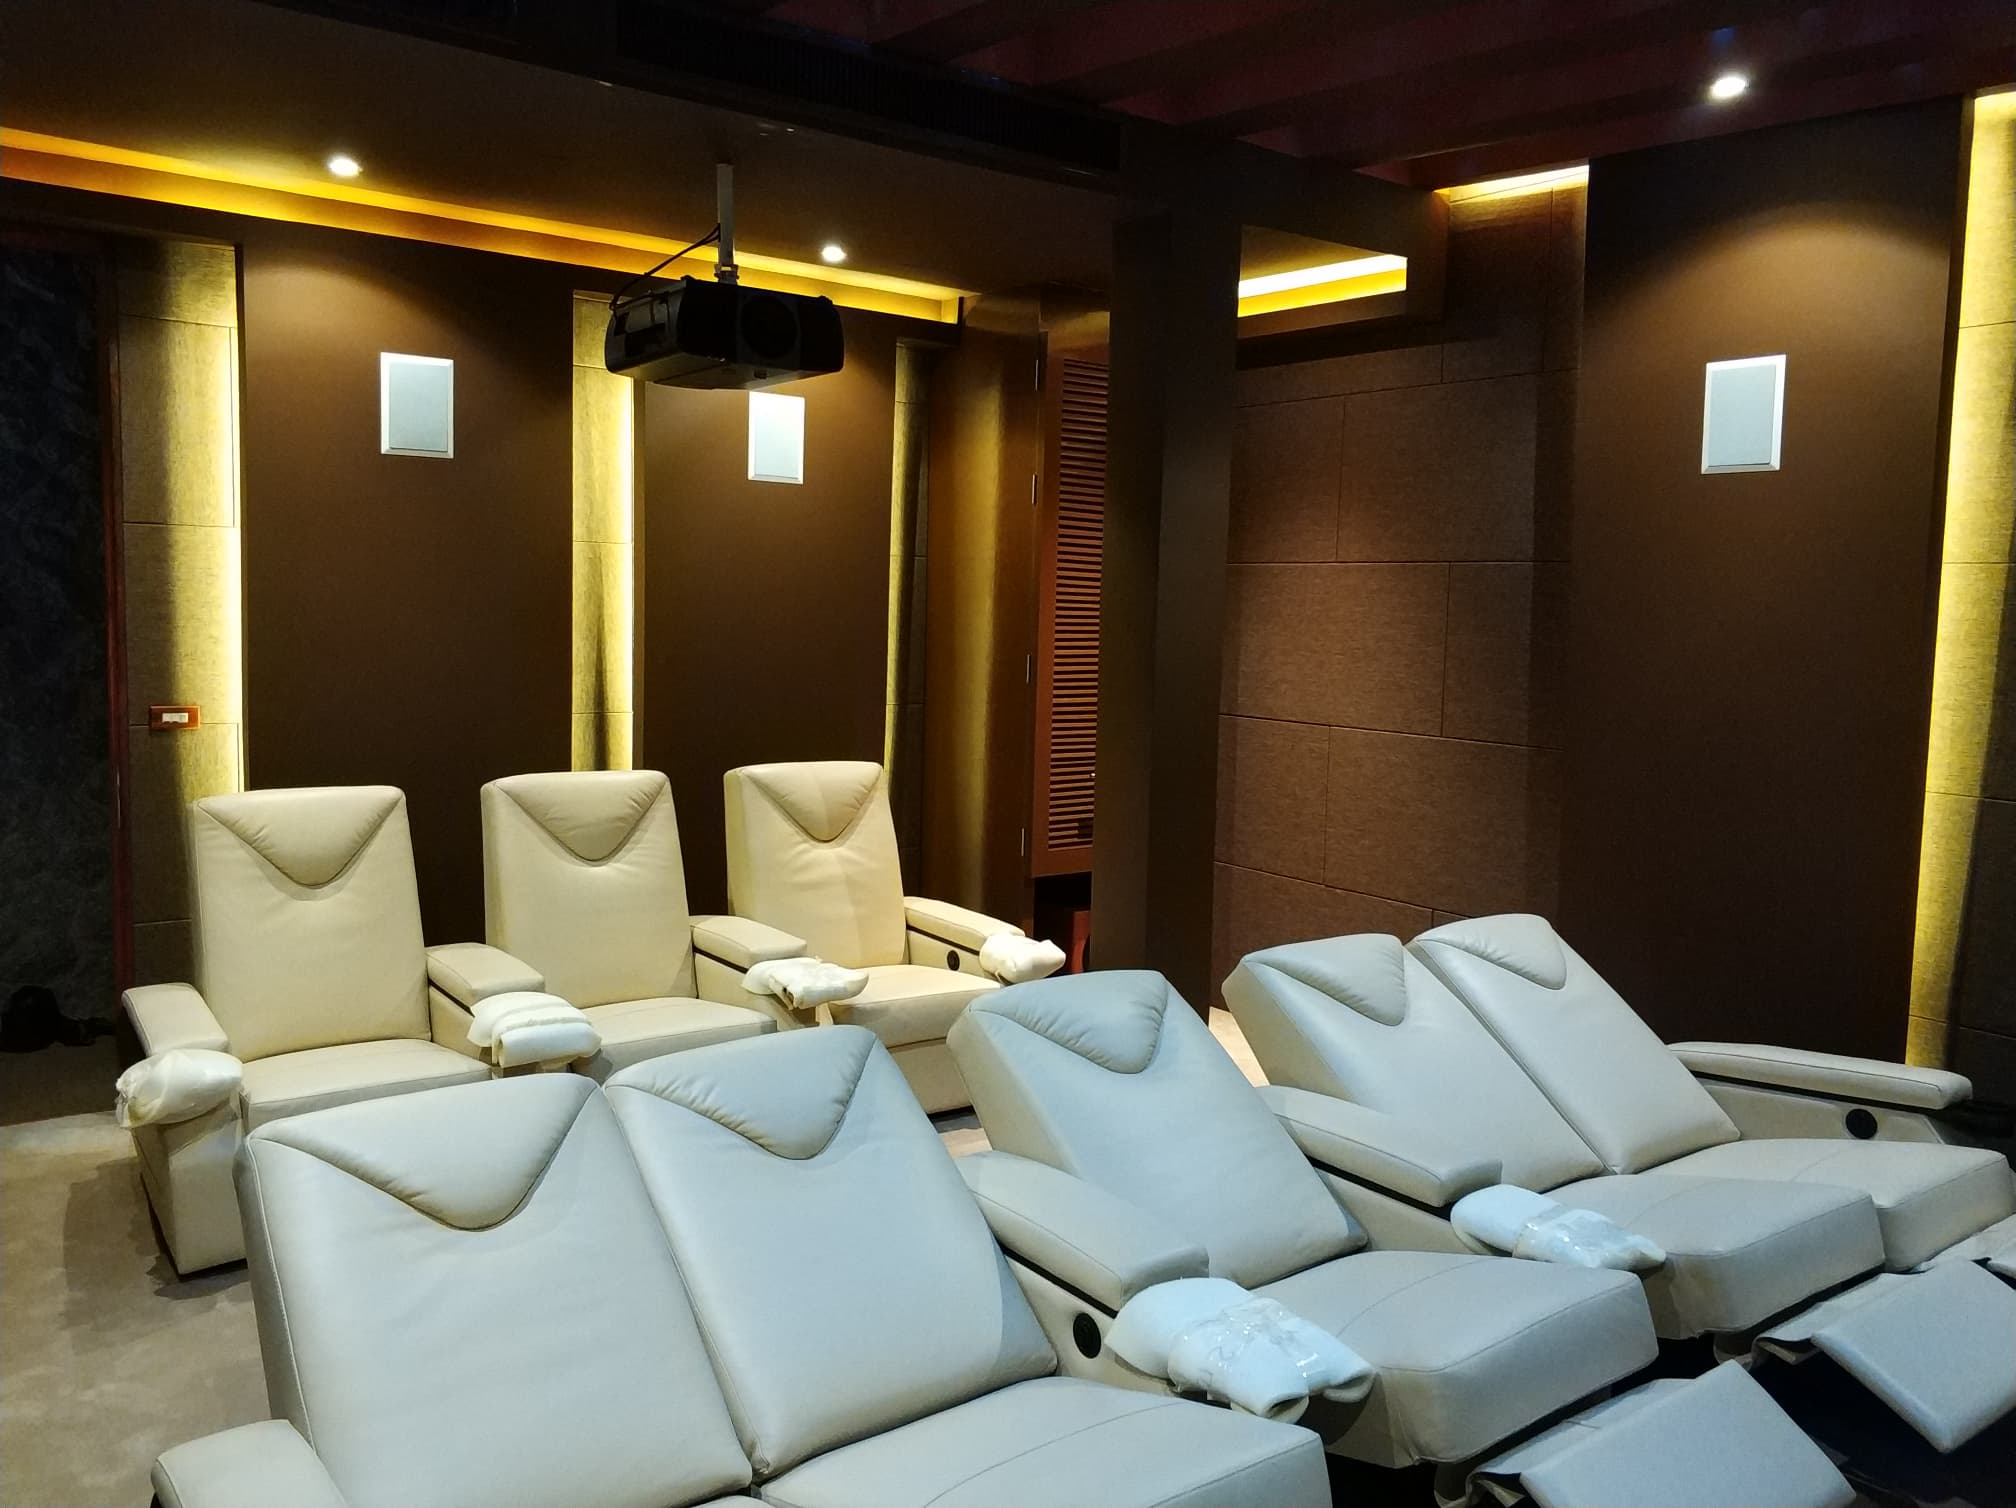 Our custom home cinema motorised recliners in premium leather in Ferrari White